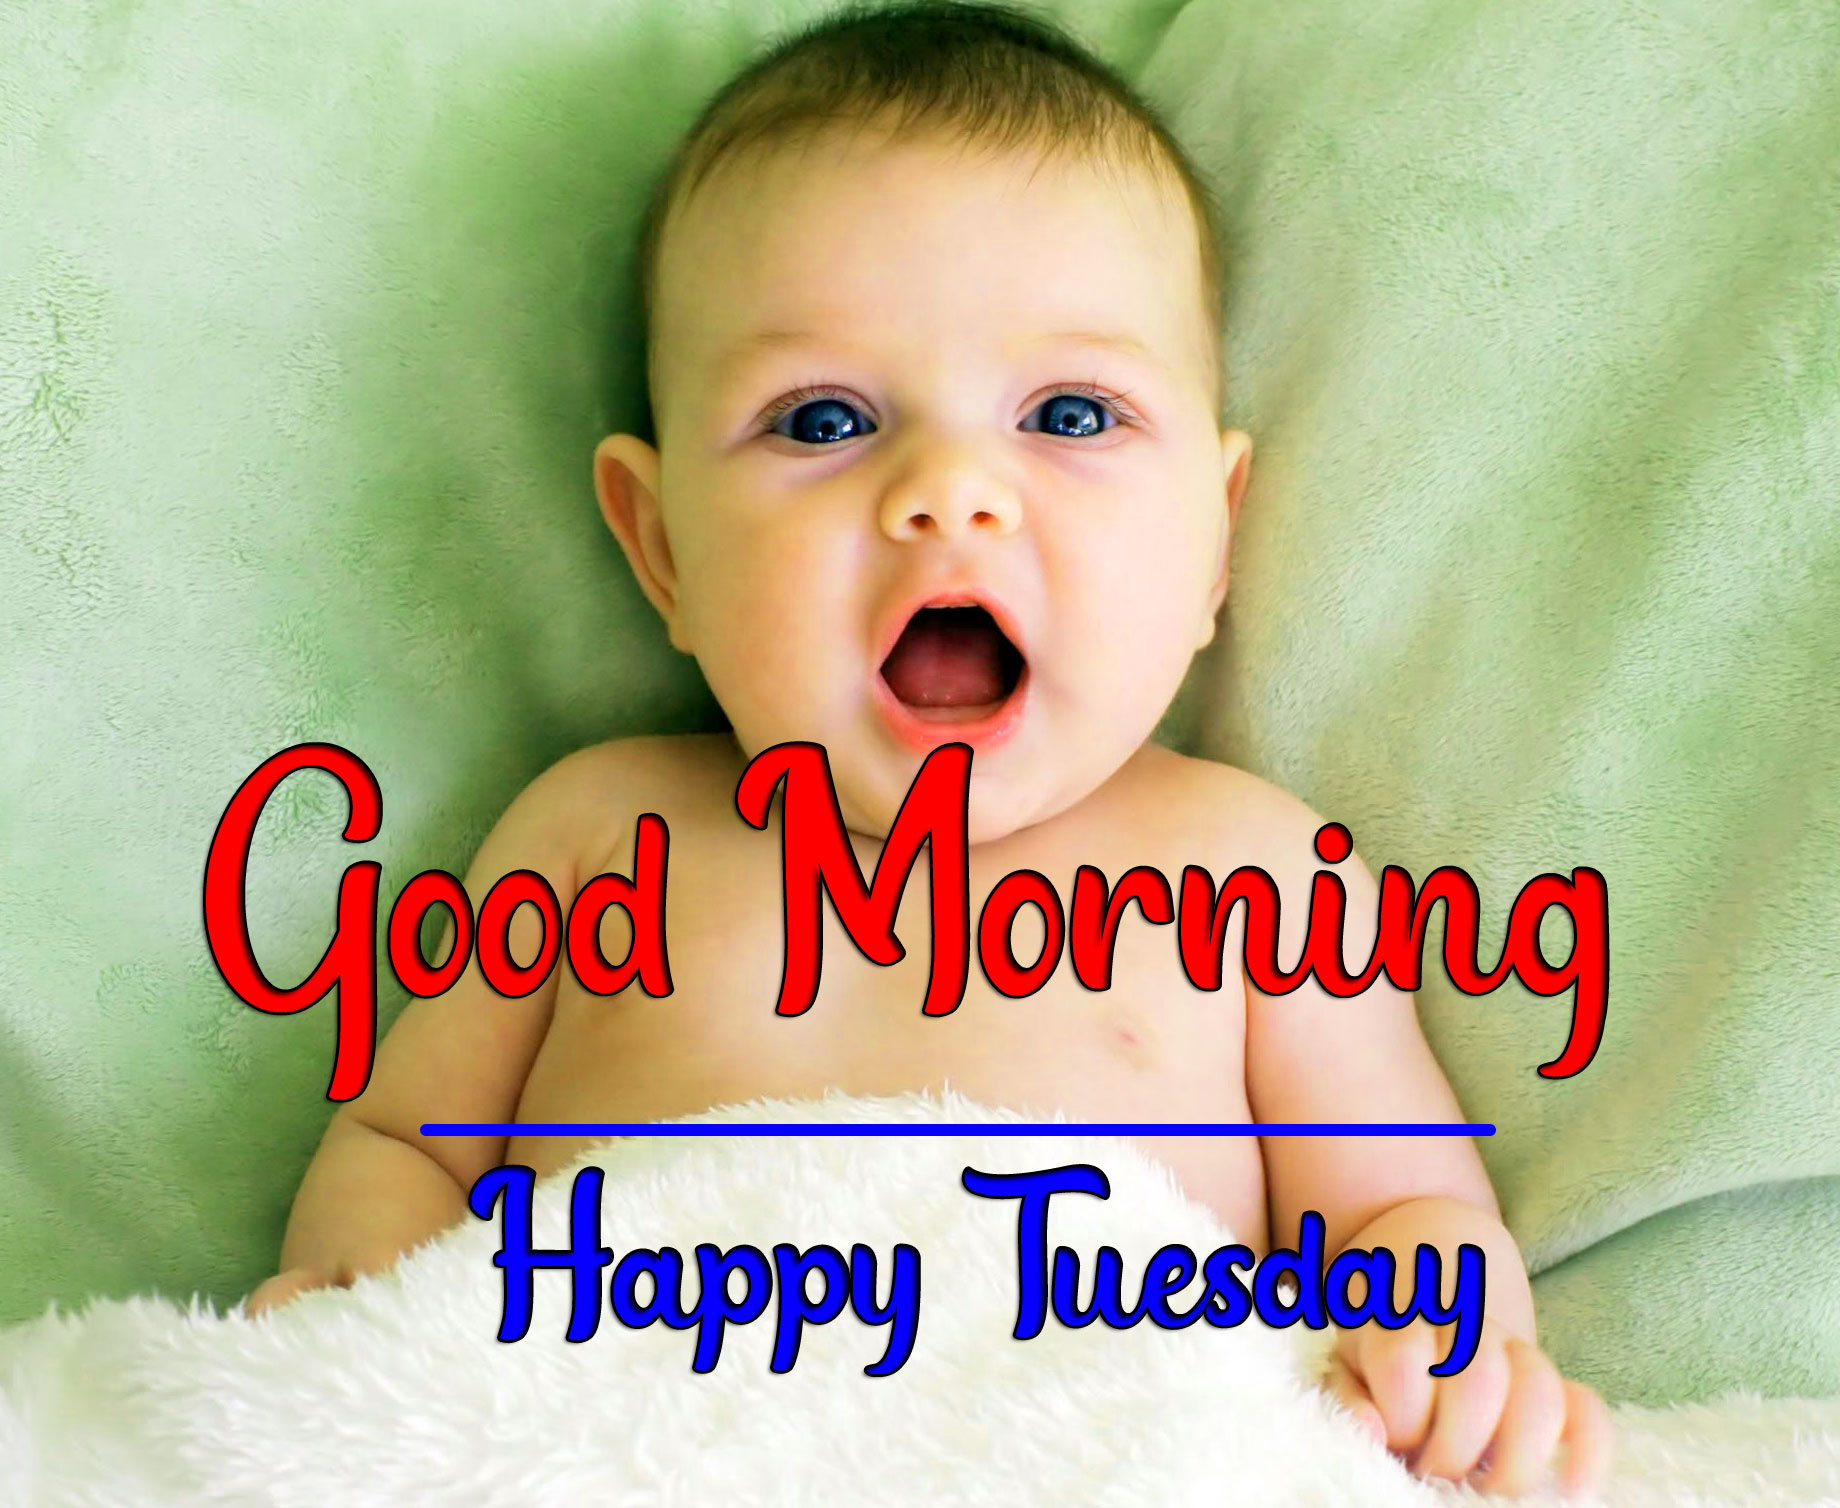 Tuesday Good morning Wallpaper With Cute Baby